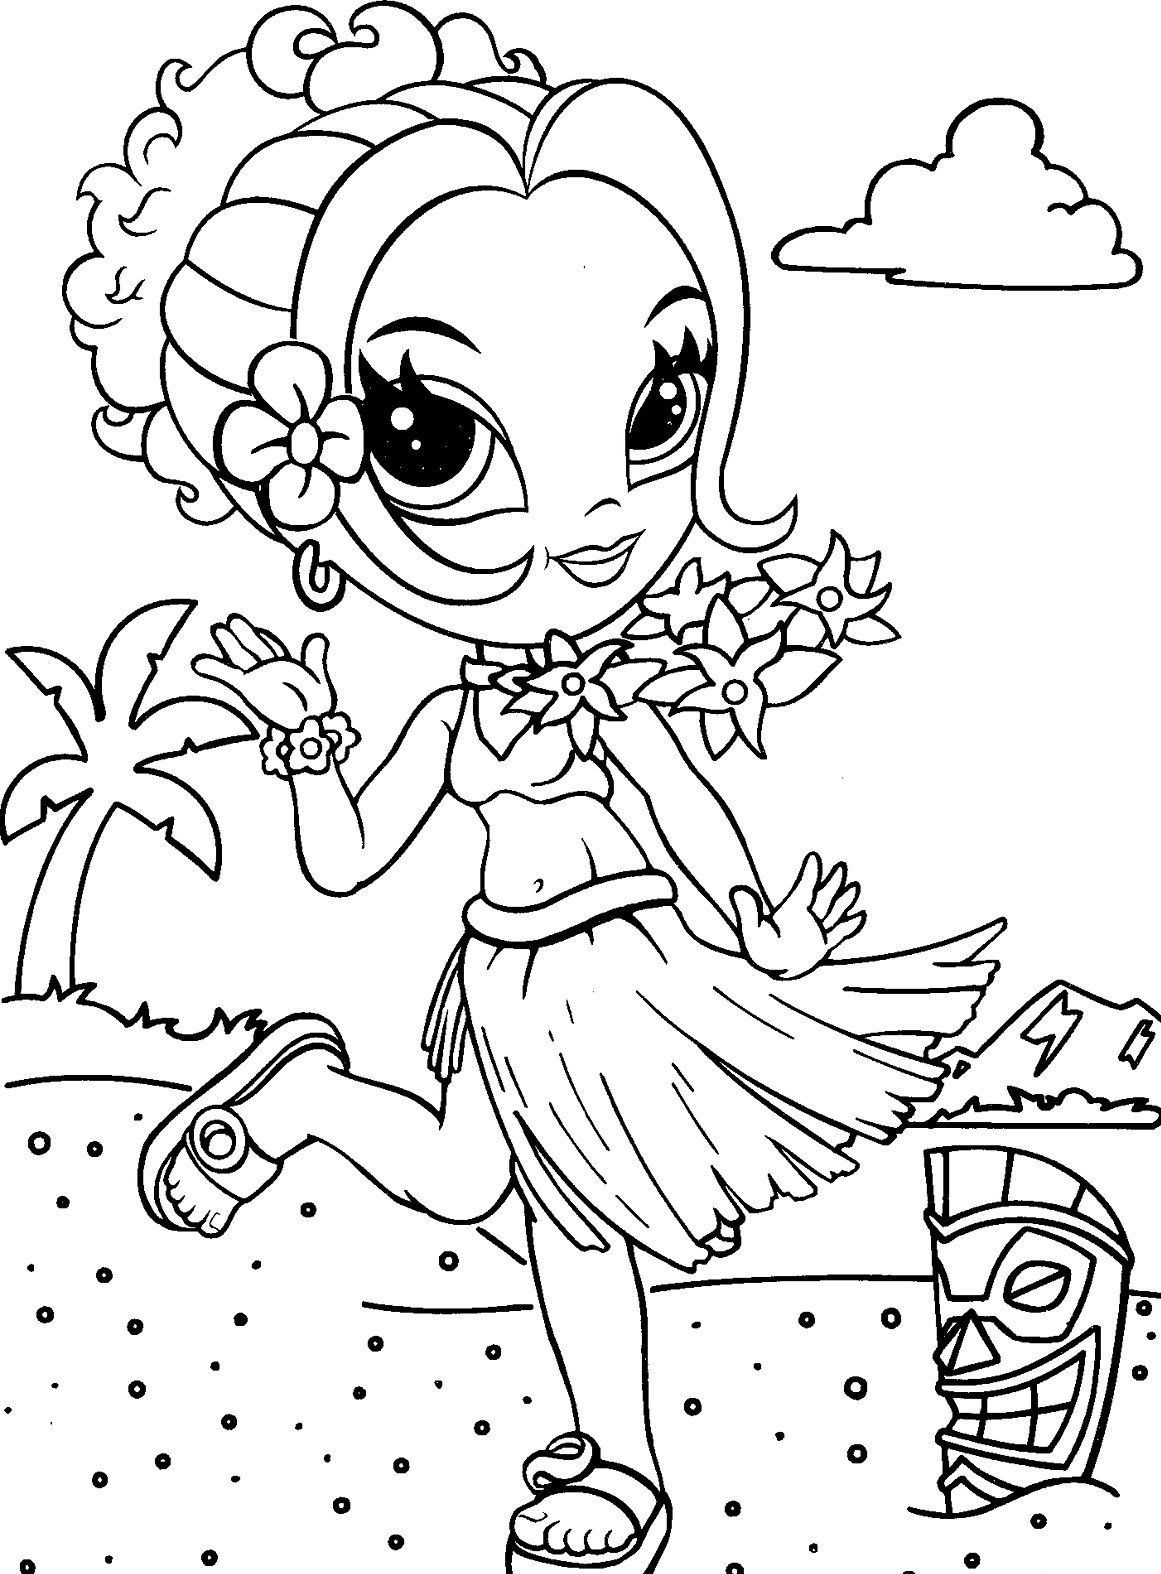 Free Lisa Frank Printable Coloring Pages Get These Lisa Frank Coloring Pages For Your Unicorn Coloring Pages Lisa Frank Coloring Books Cartoon Coloring Pages [ 1574 x 1161 Pixel ]